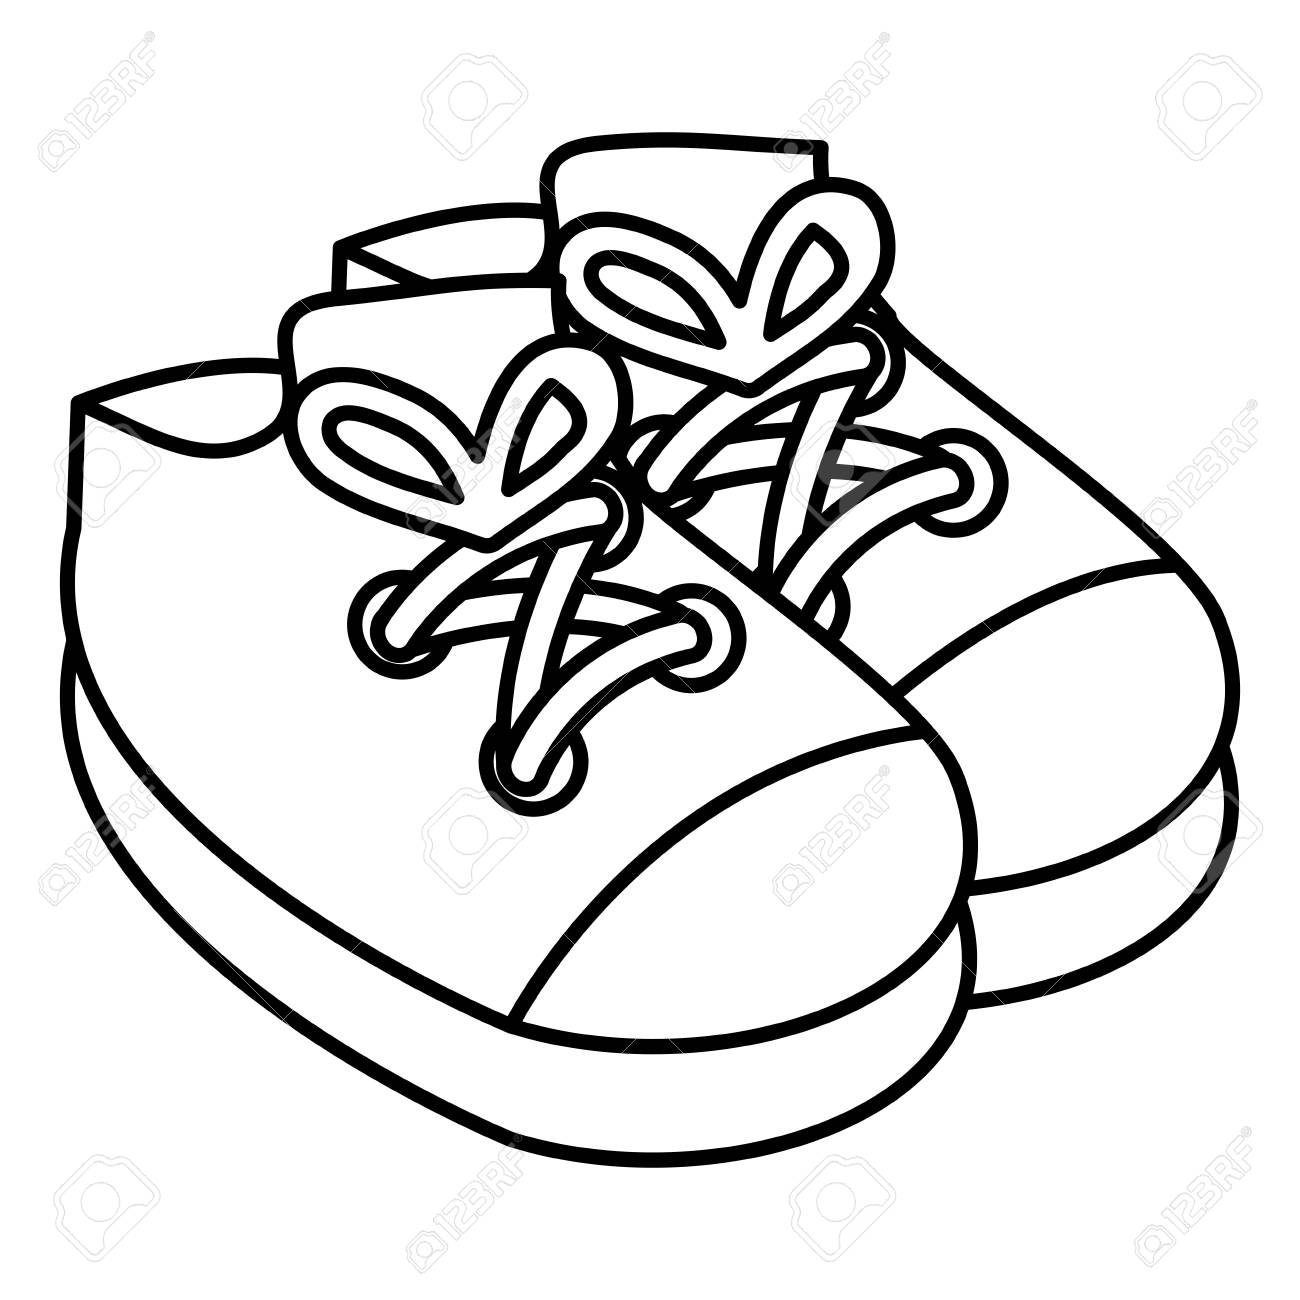 Baby Shoes Isolated Icon Vector Illustration Design Royalty Free Cliparts Vectors And Stock Illustration Image 98717610